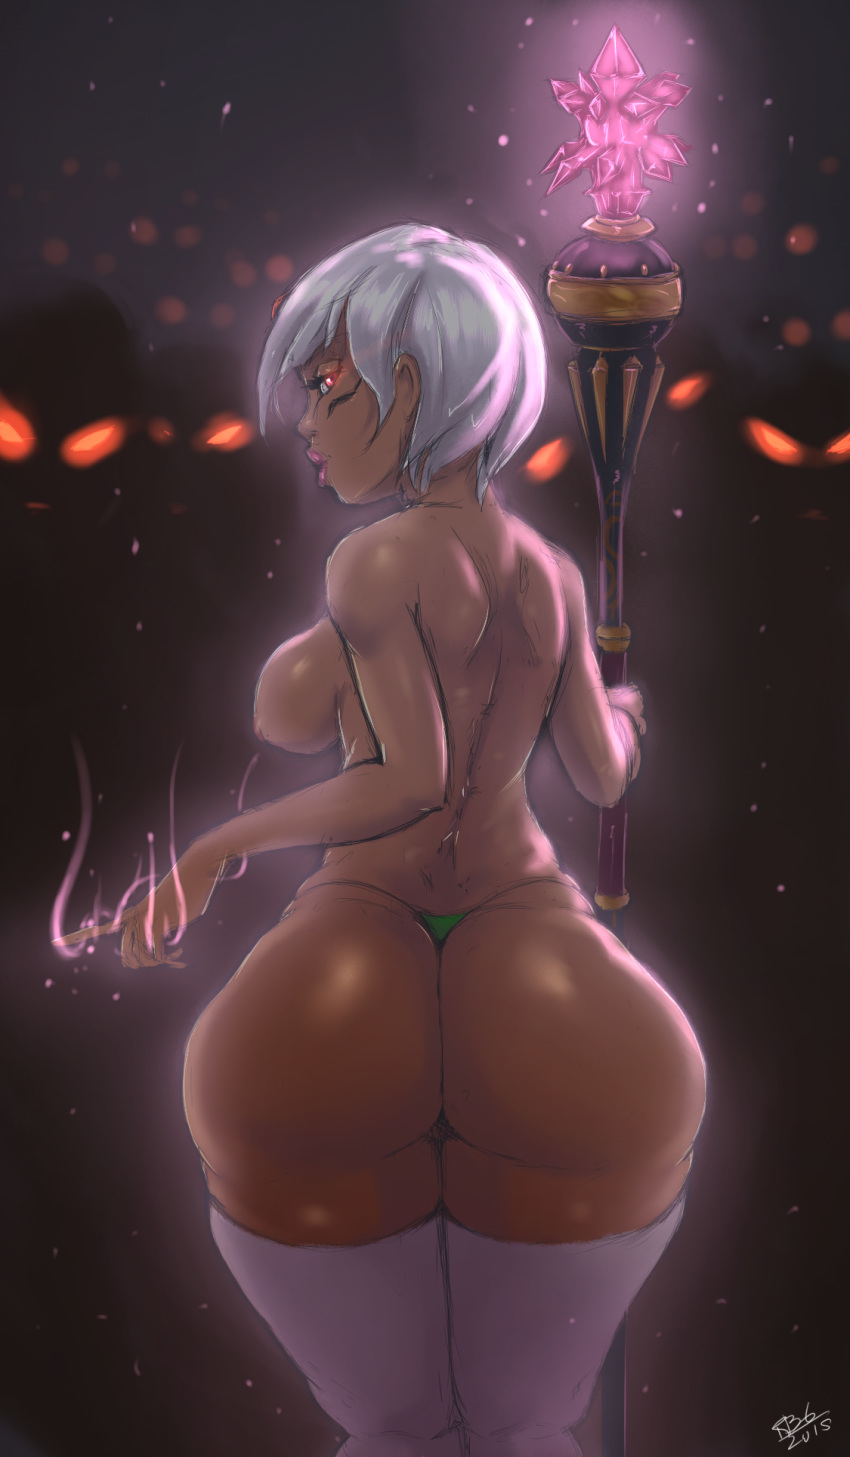 of the busty in lolis village Pics of five nights at freddy's